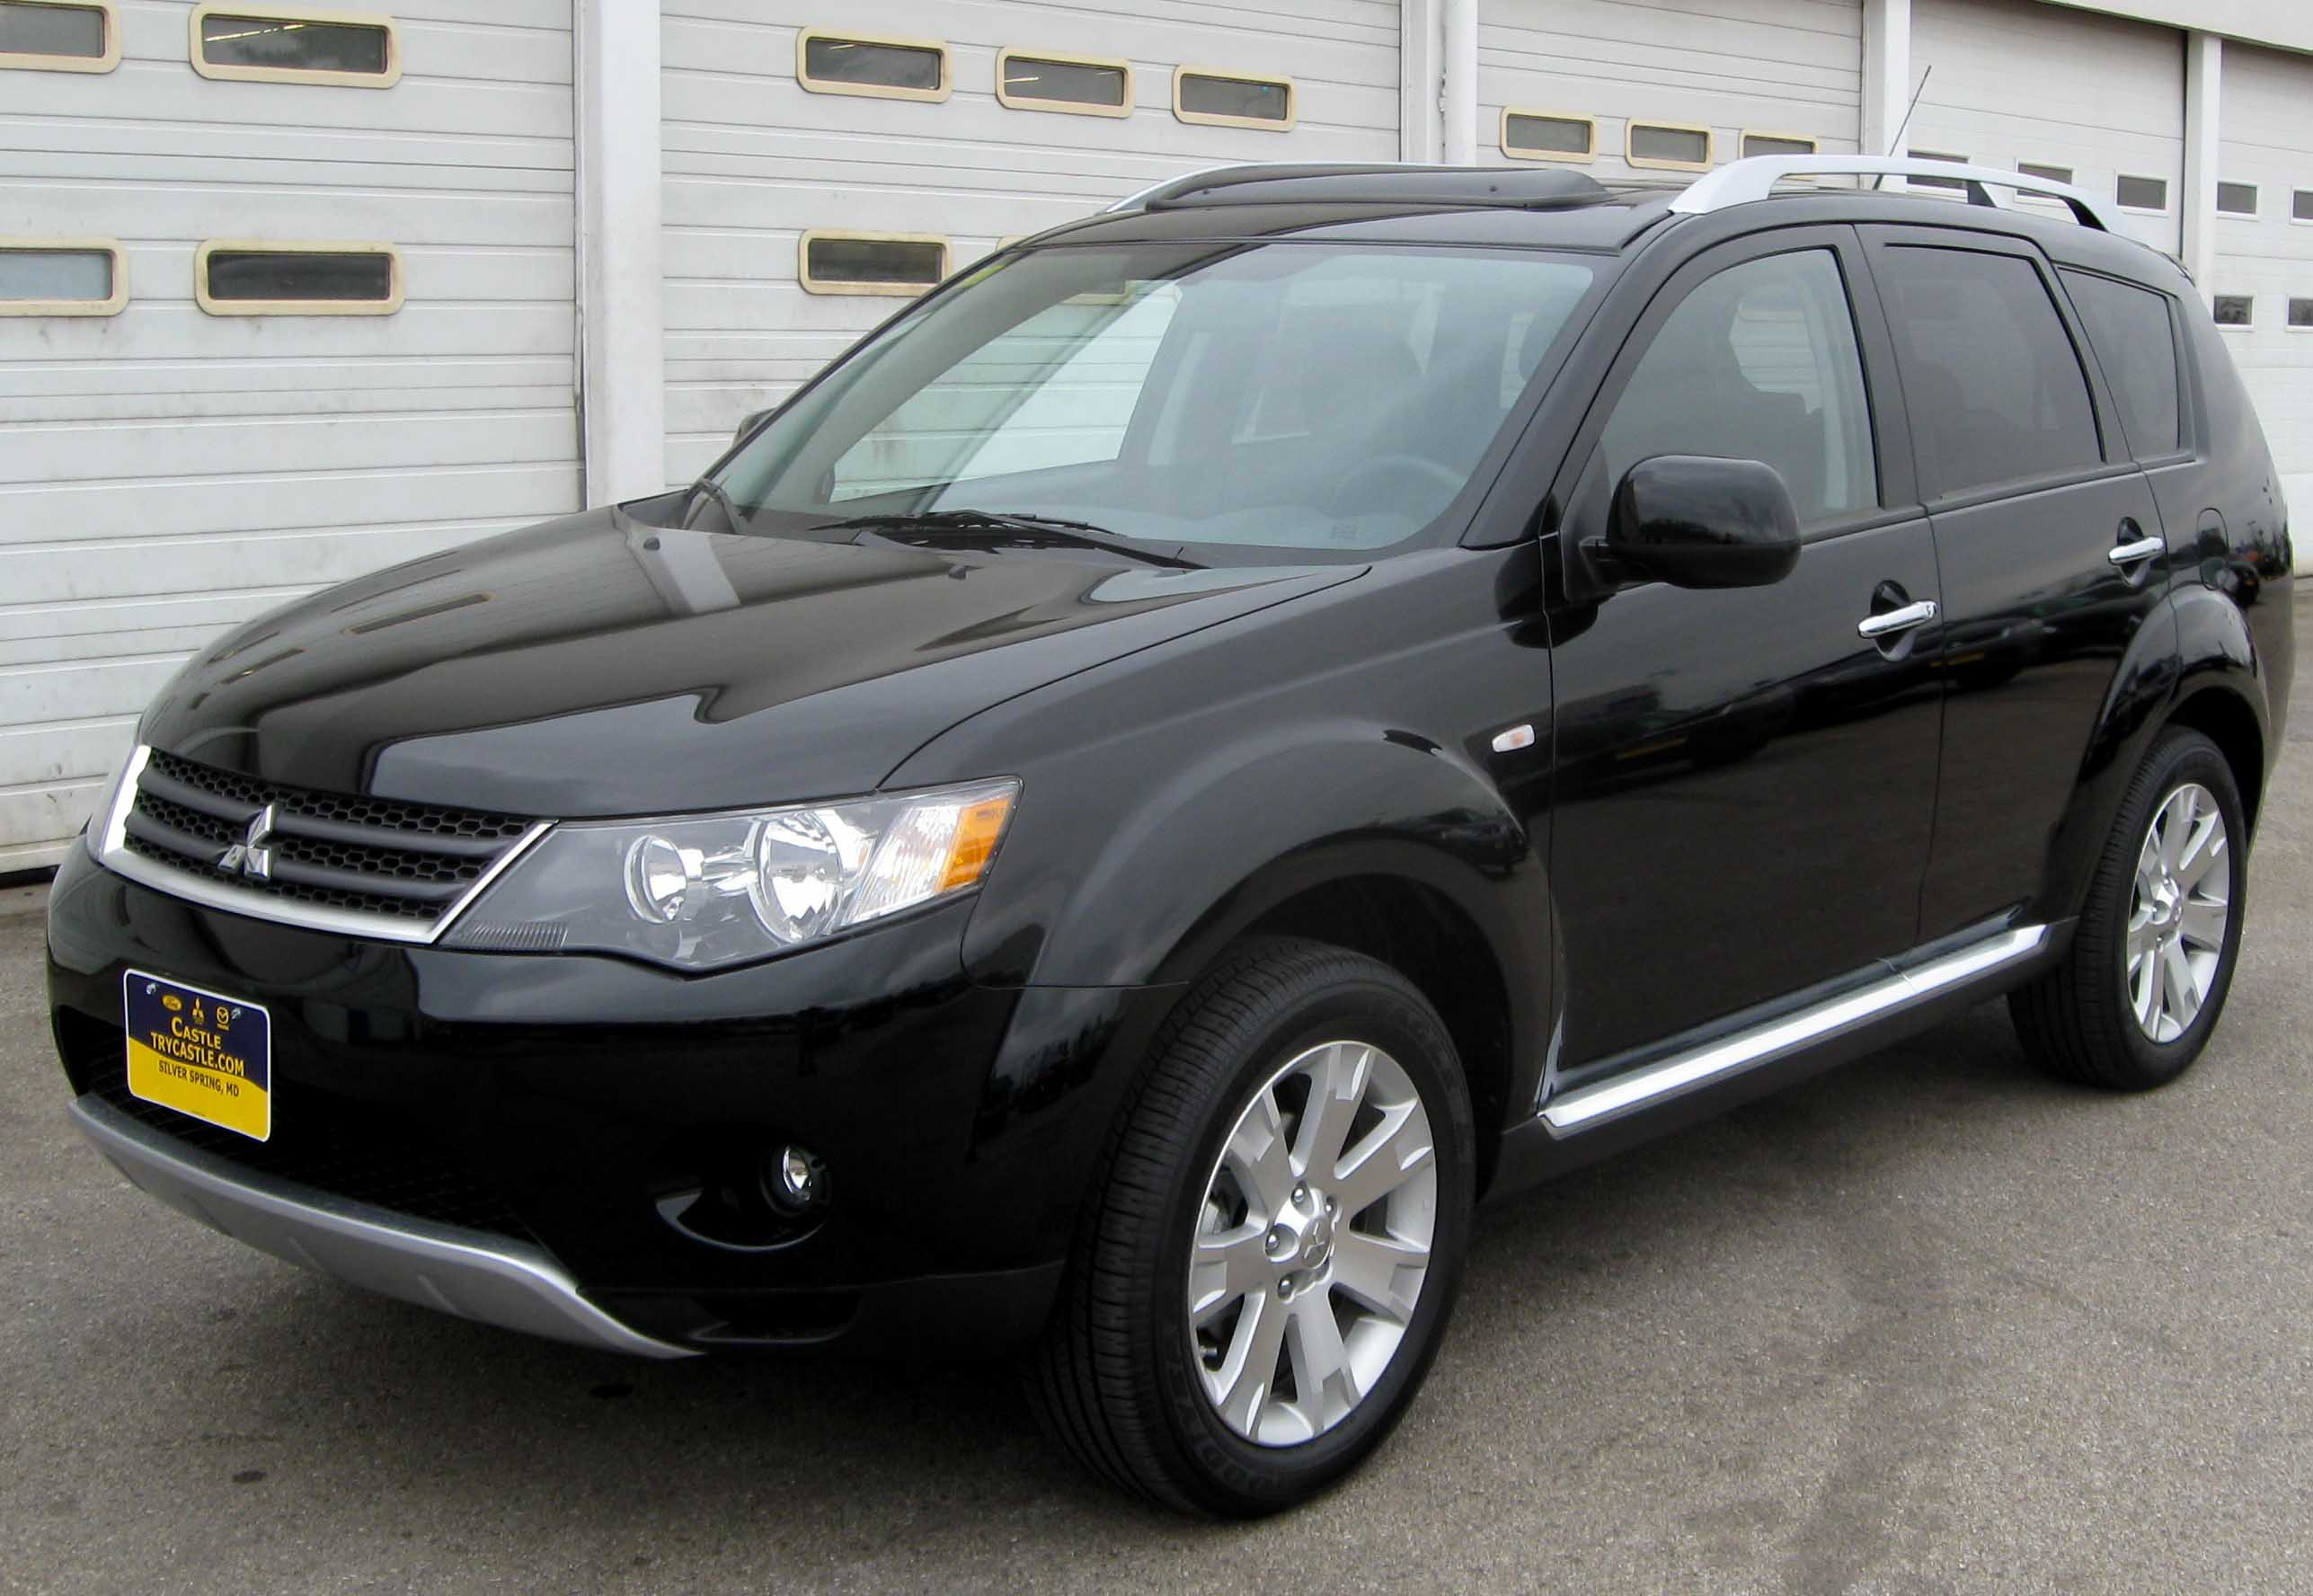 2009 mitsubishi outlander ii pictures information and specs auto. Black Bedroom Furniture Sets. Home Design Ideas